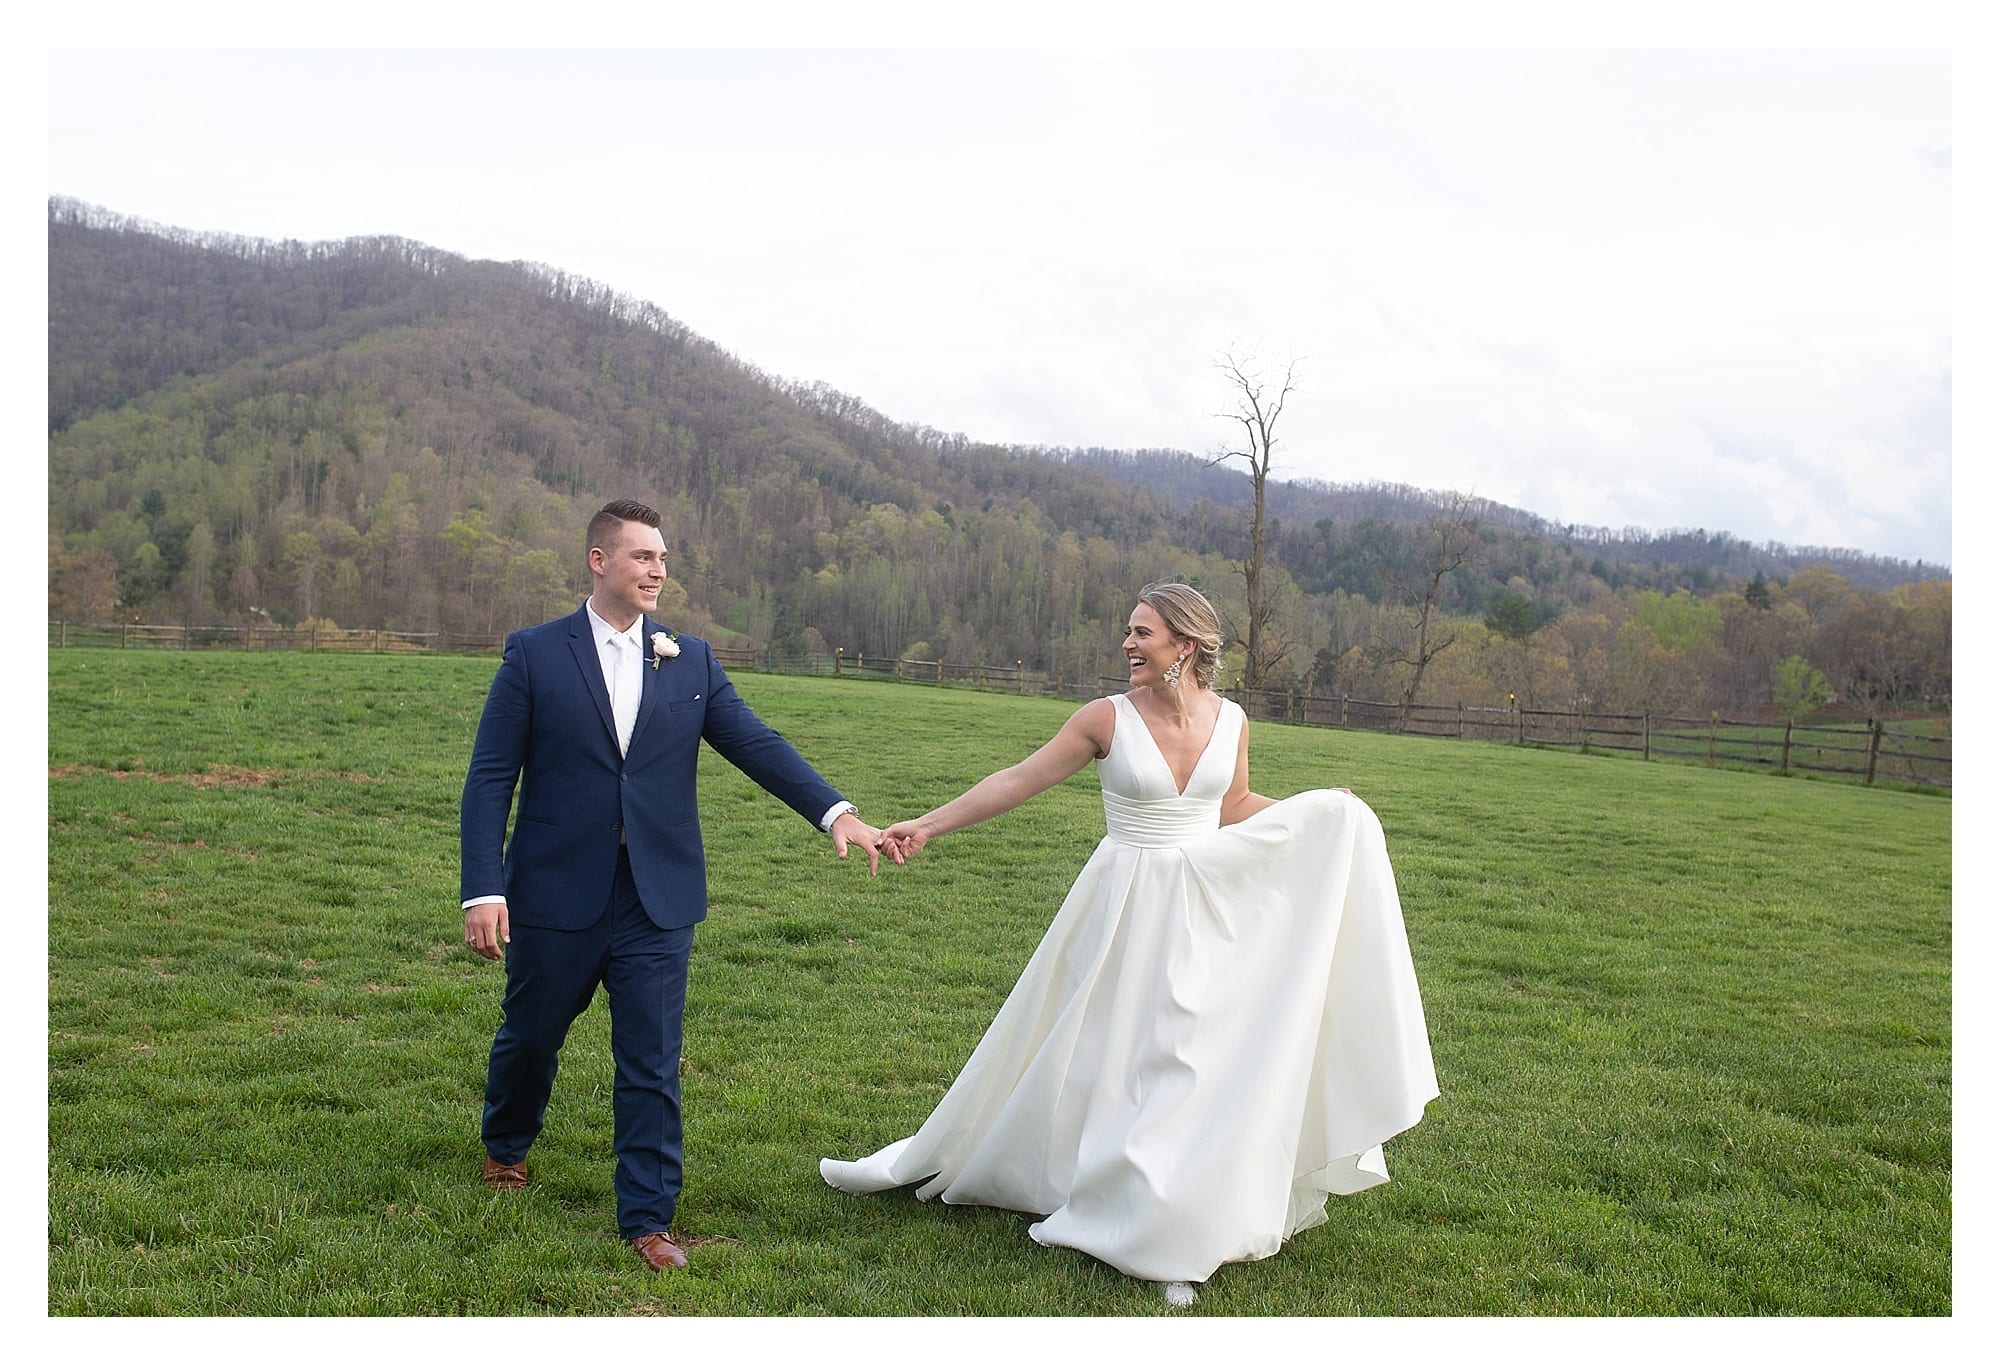 Bride and groom holding hands in grassy field